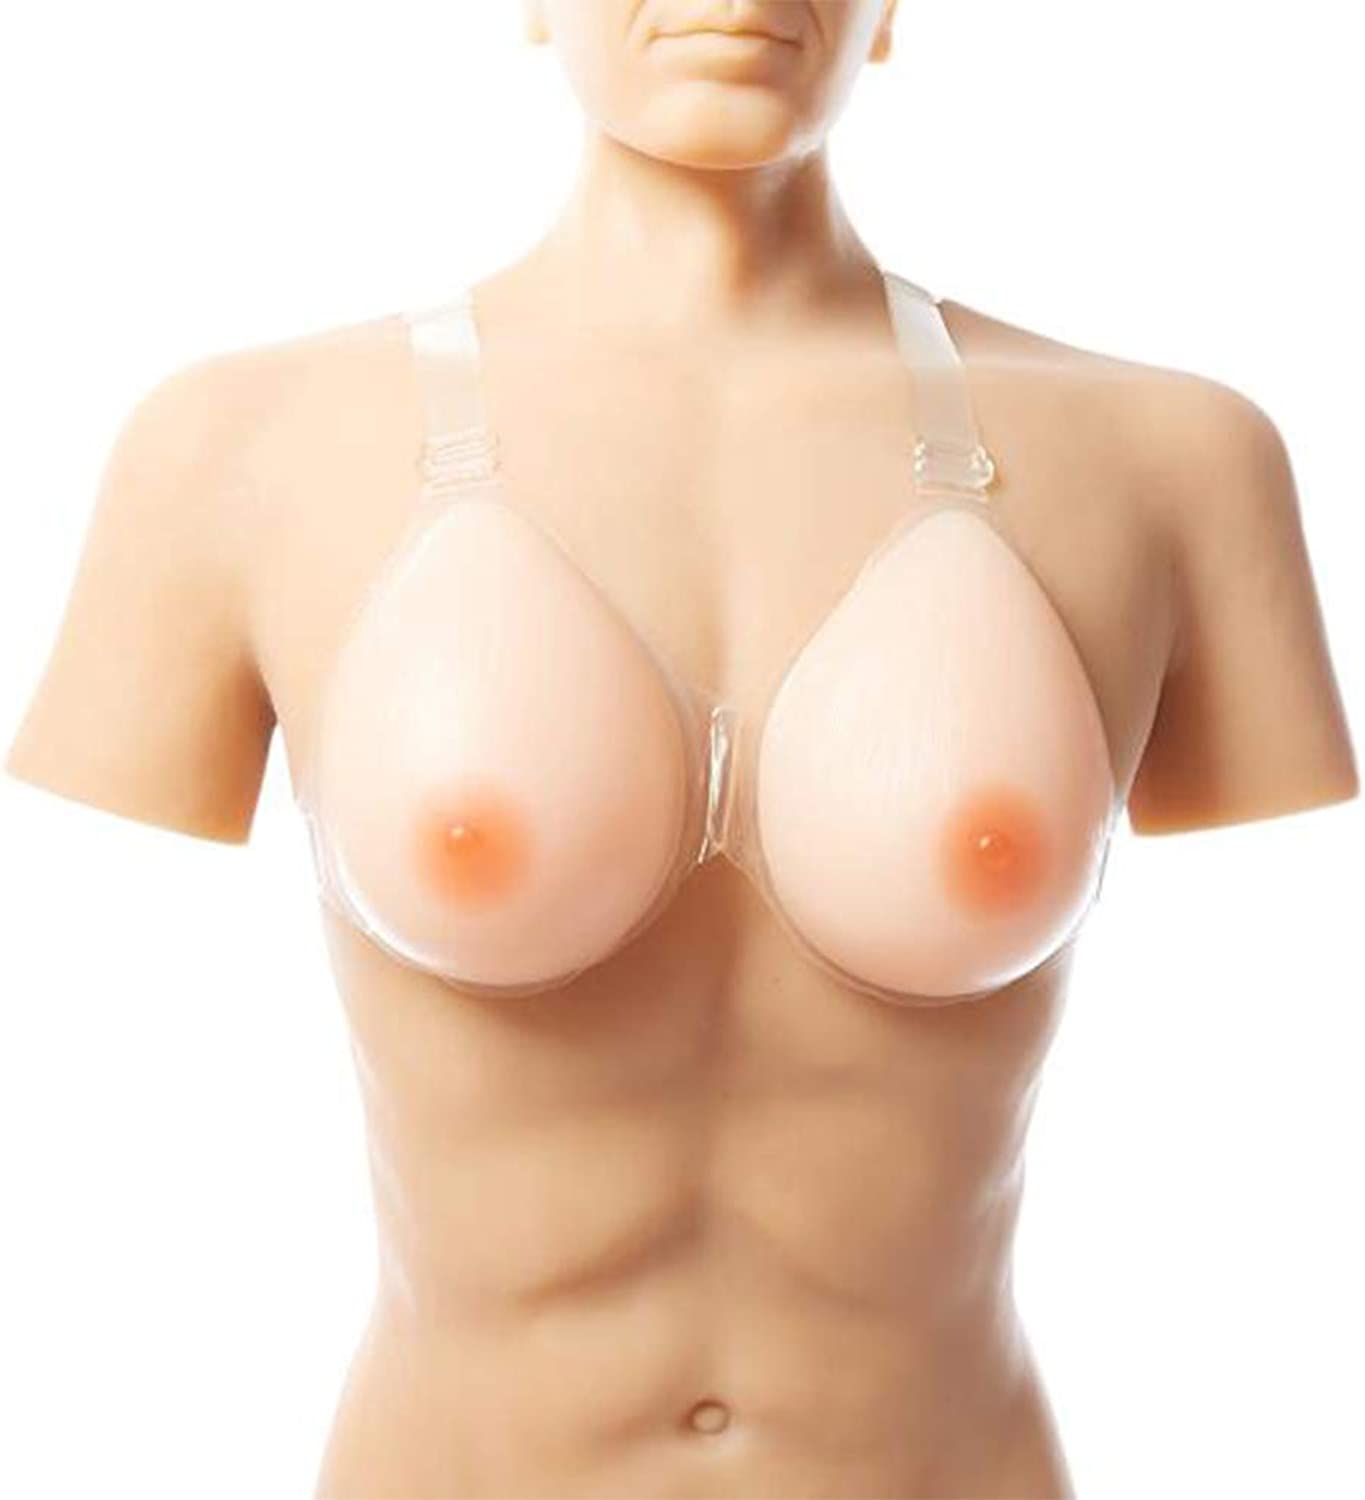 Boobs Realistic Silicone Breast Forms for Crossdressers Sexy Shemale Drag Queen Artificial Silicone Breast WaterDrop Shape